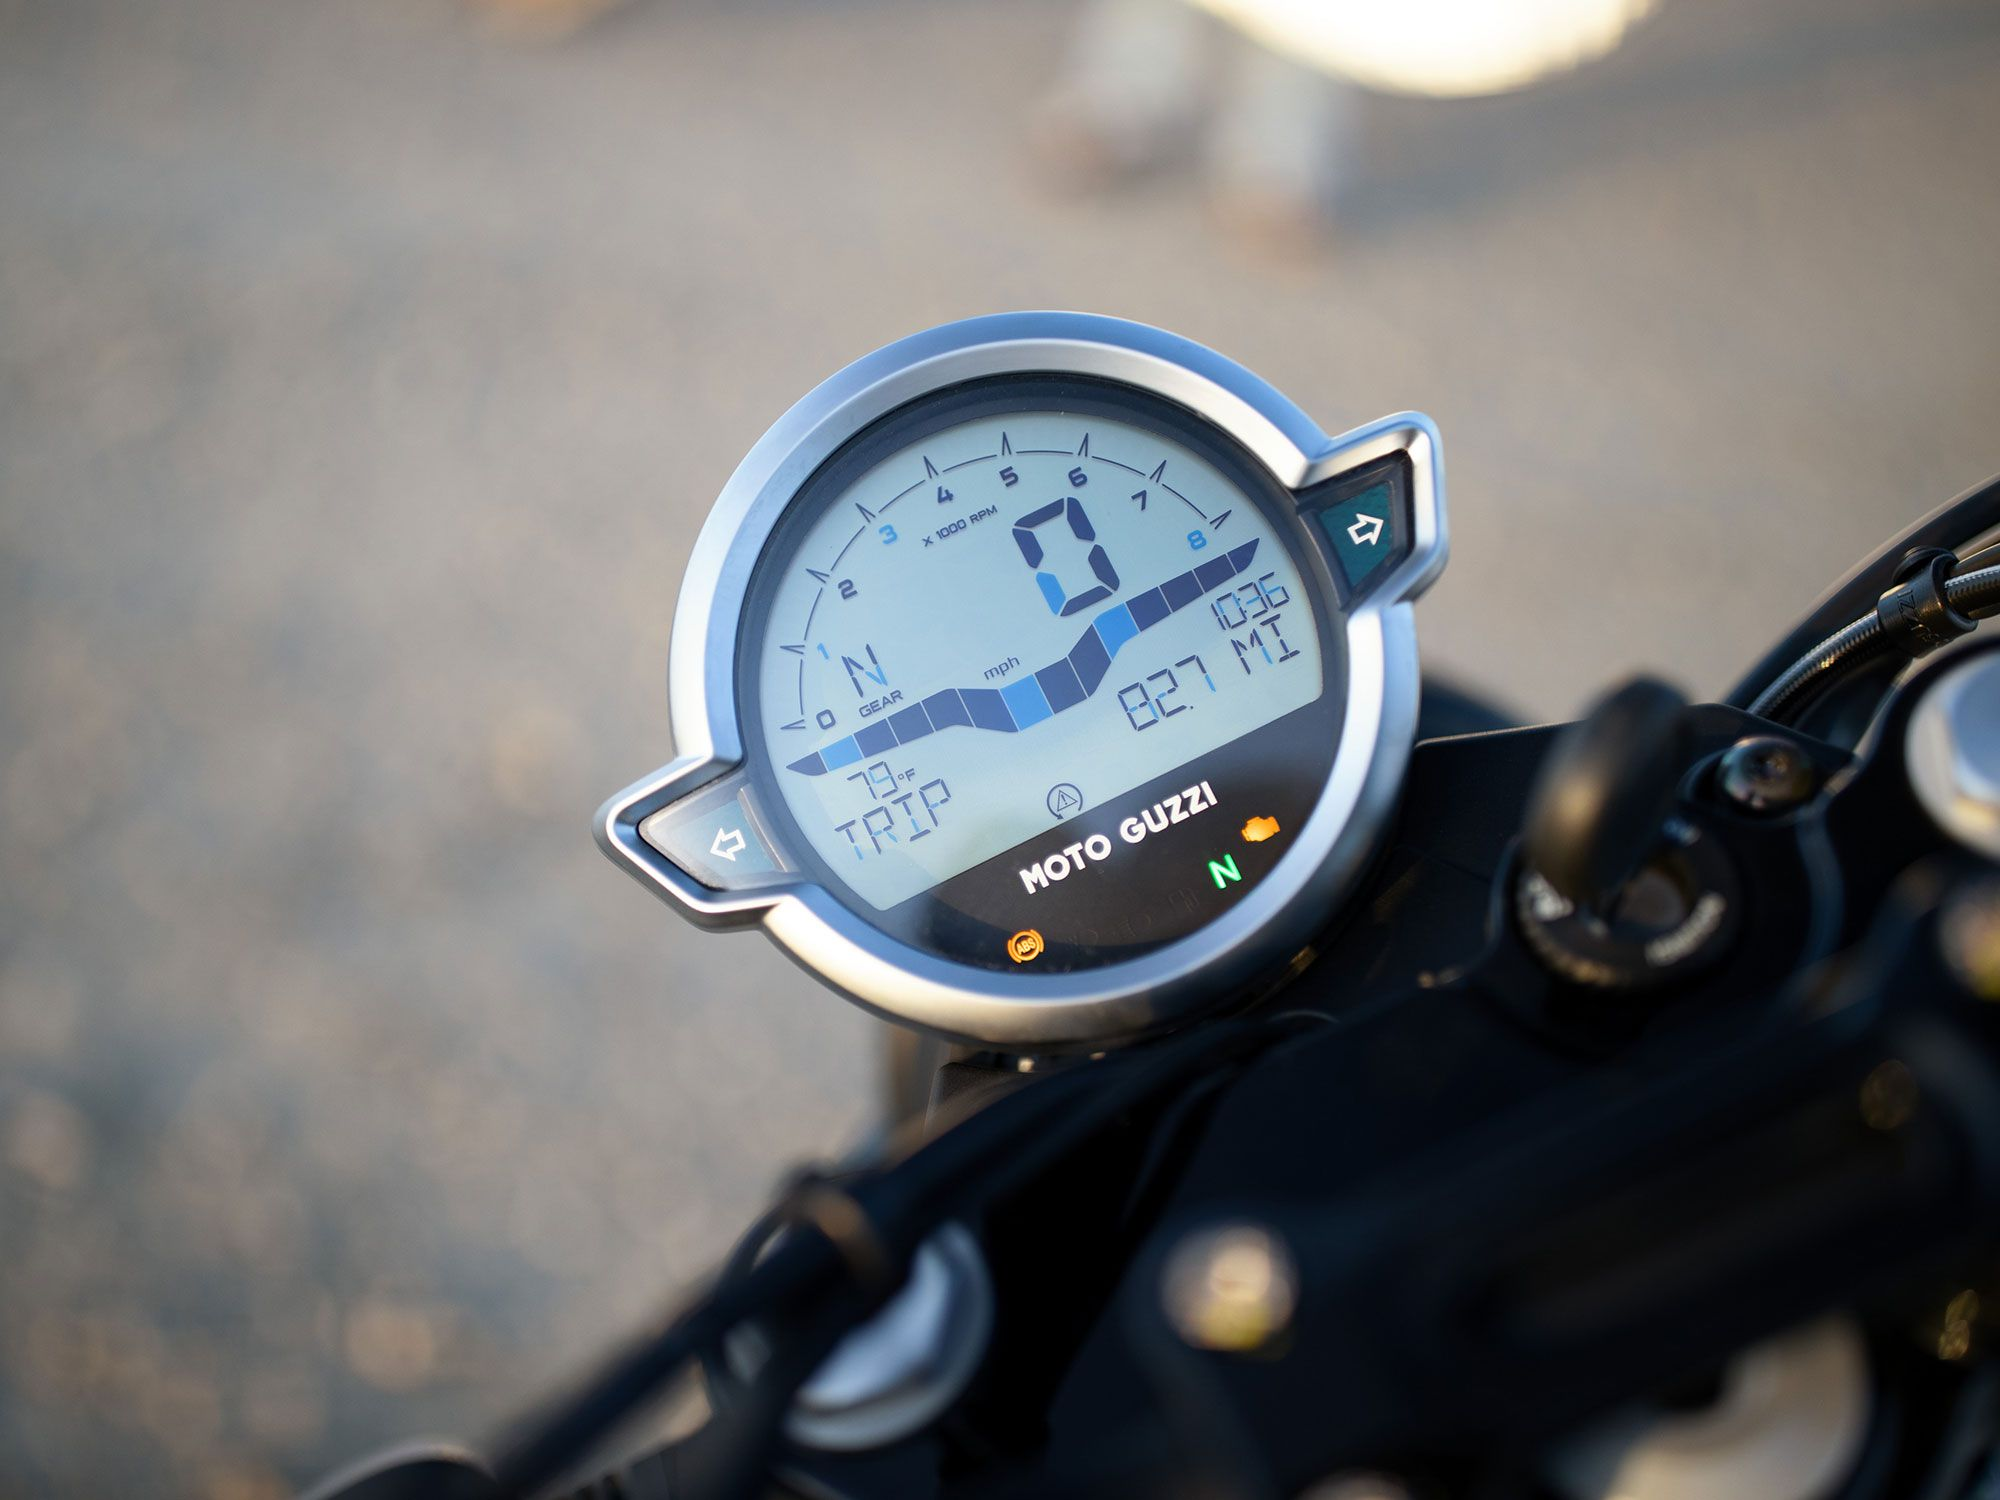 An all-new digital gauge on the V7 Stone, matching the shape of the new headlight.